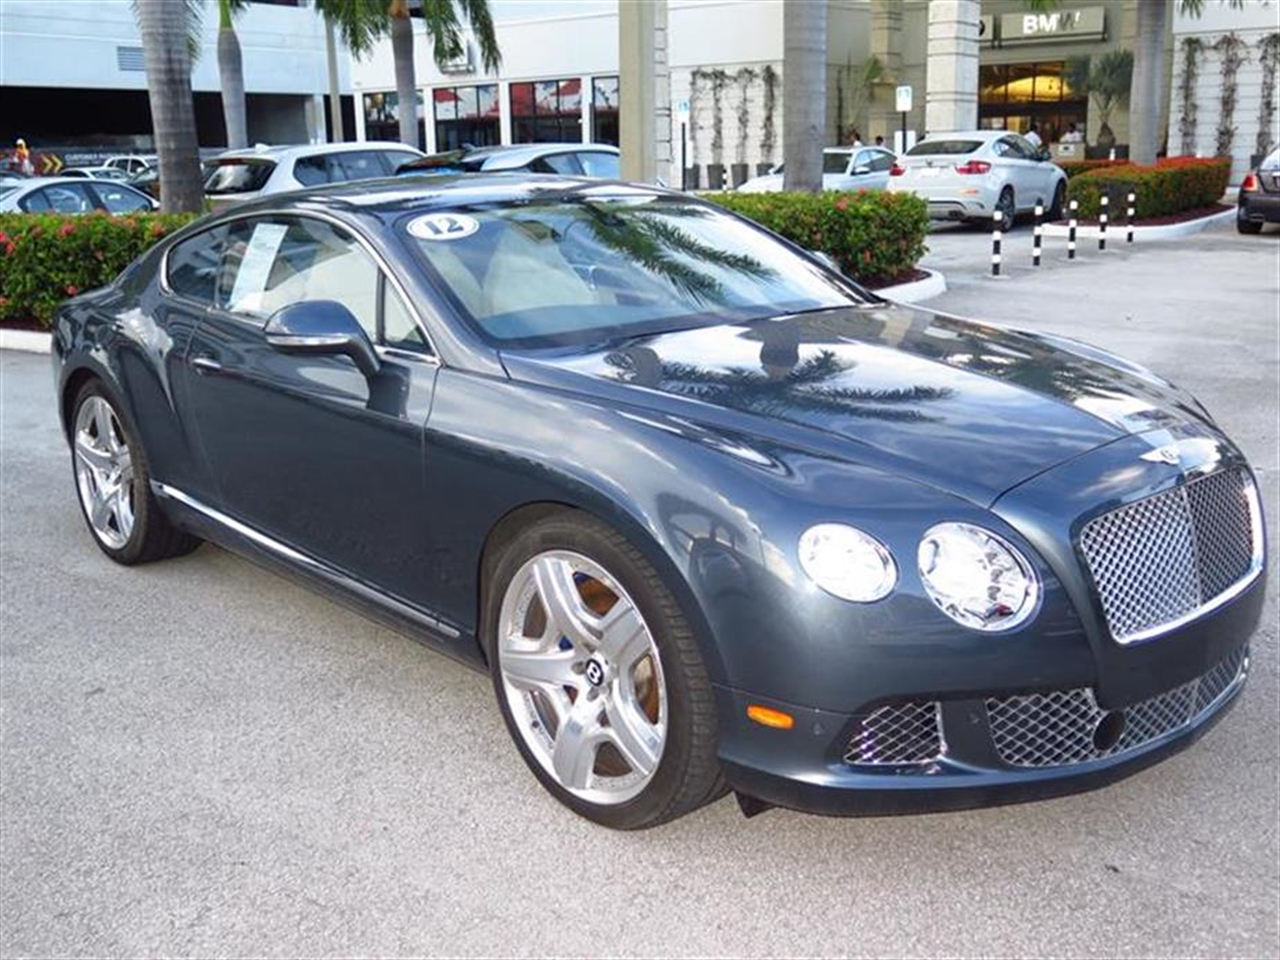 2012 BENTLEY CONTINENTAL GT 2dr Cpe 10703 miles 3-spoke monotone leather trimmed steering wheel C